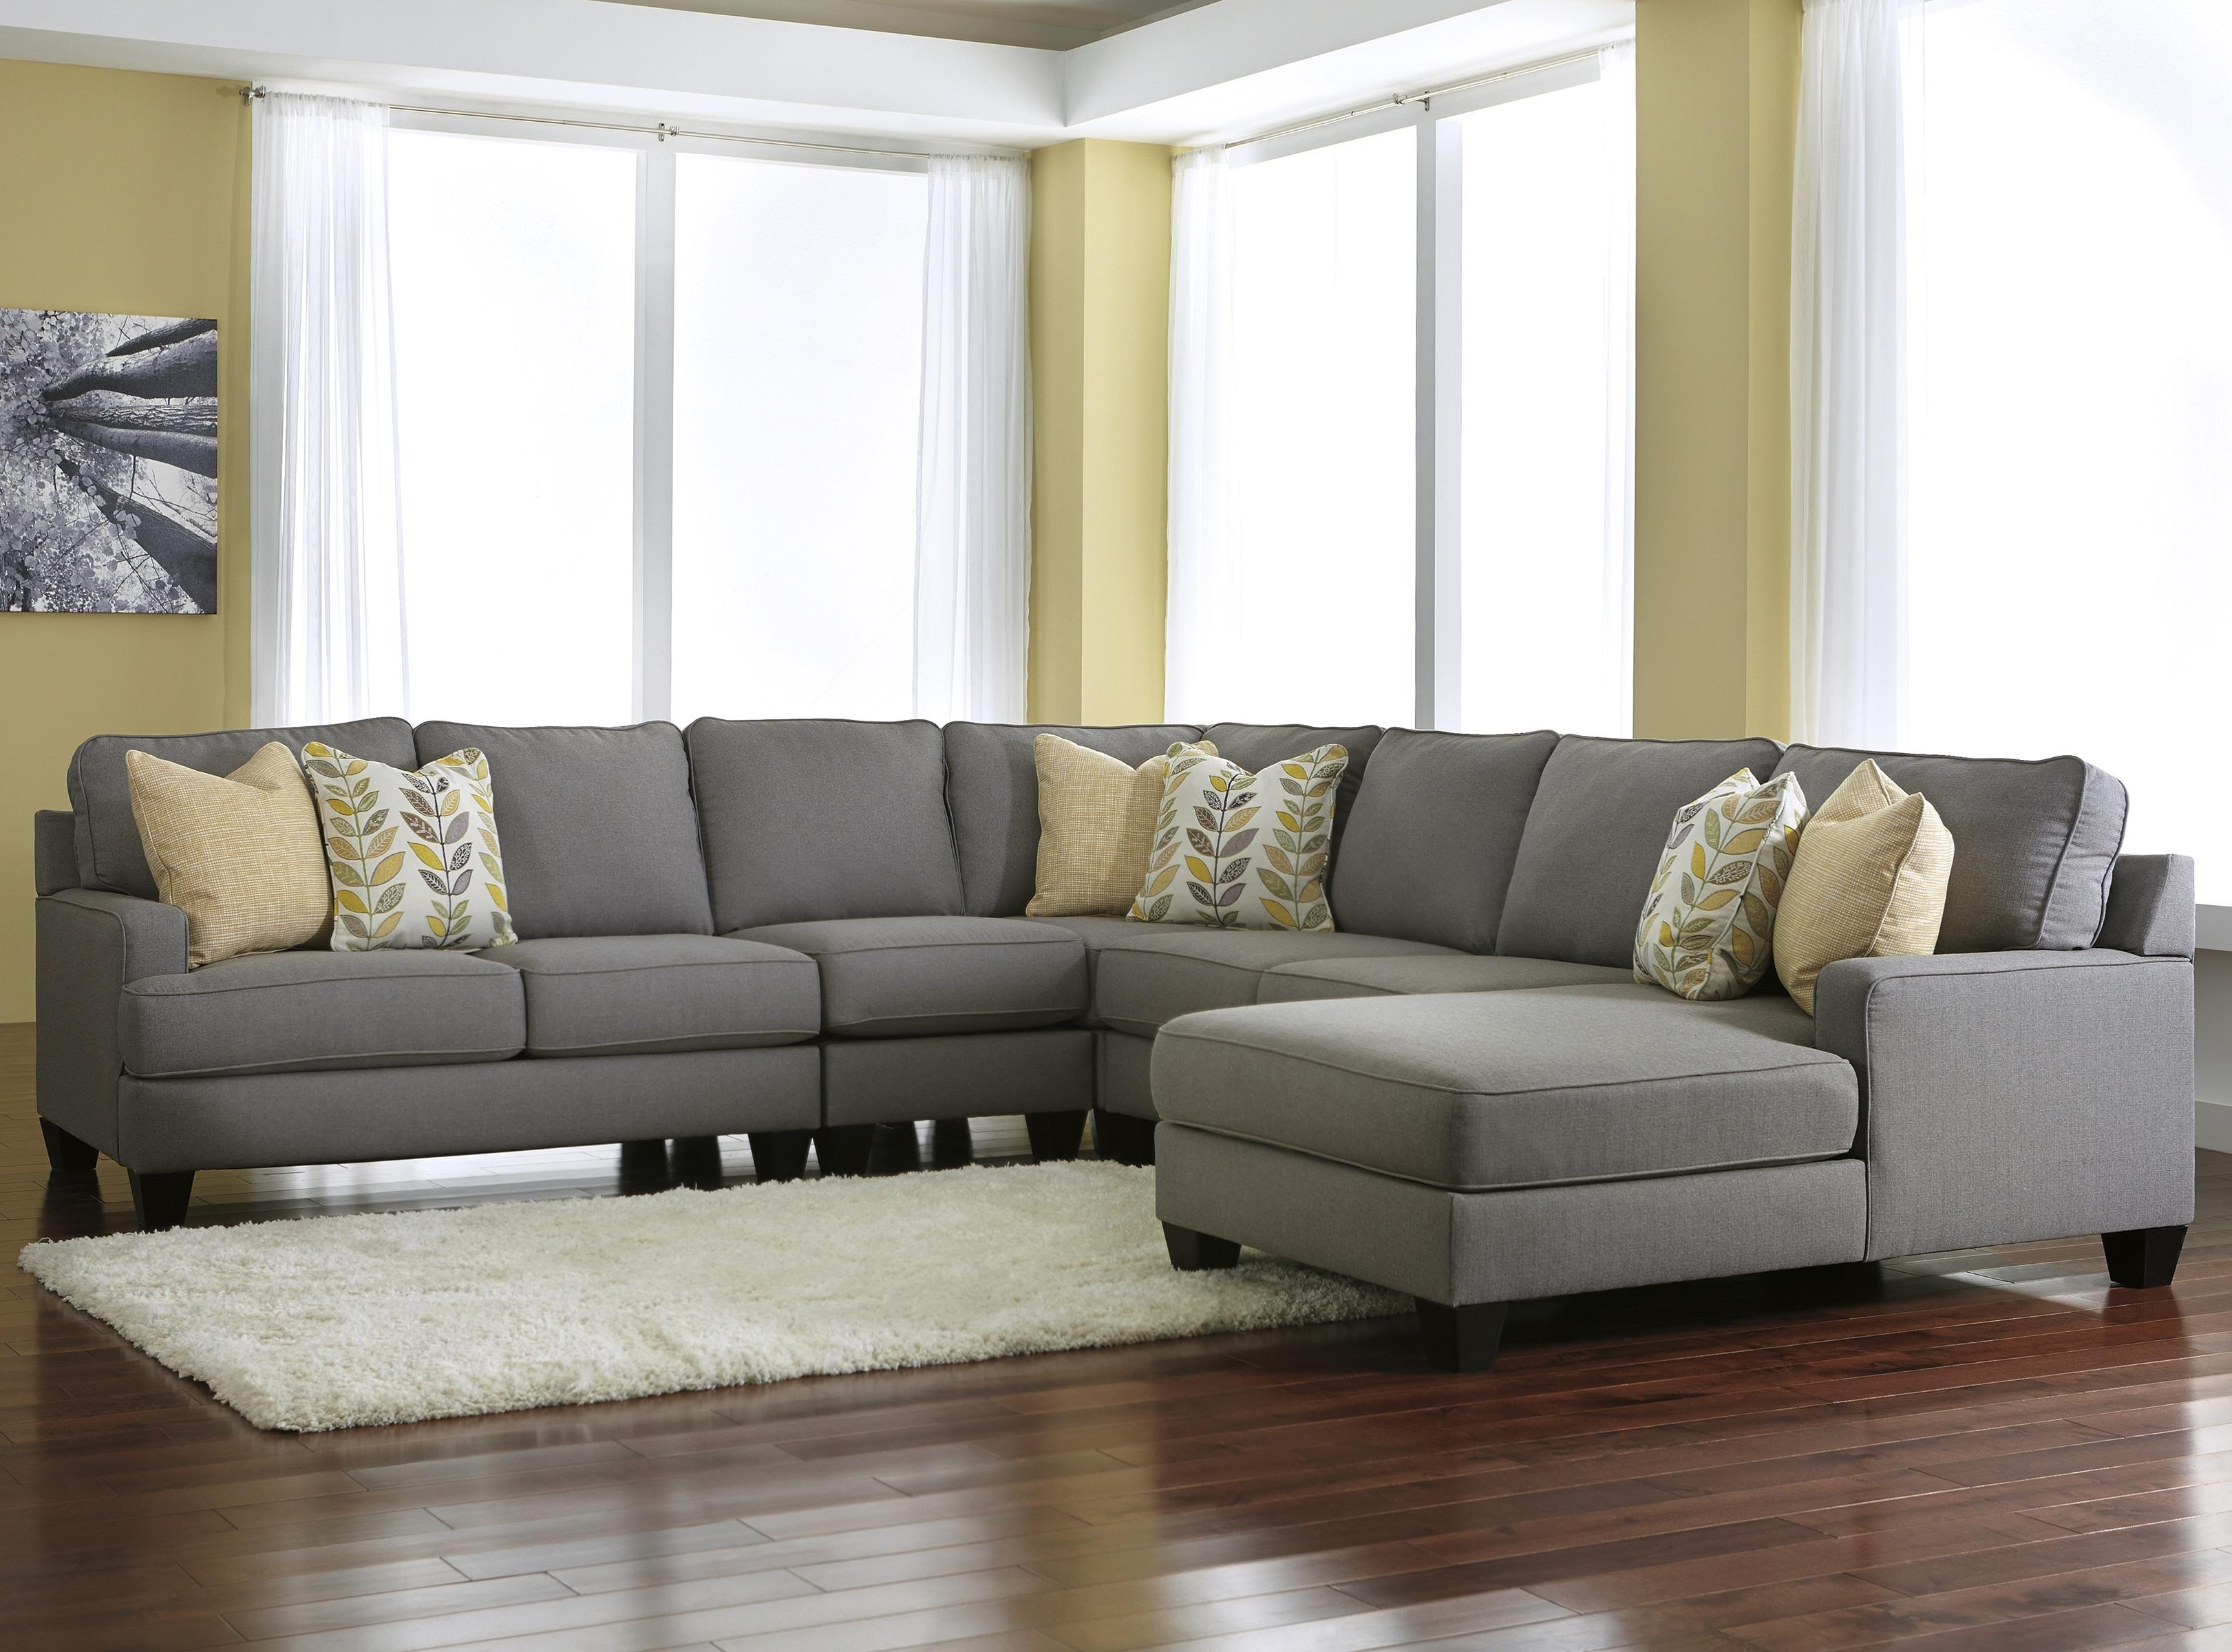 Signature Designashley Chamberly – Alloy Modern 5 Piece In Newest Jonesboro Ar Sectional Sofas (Gallery 5 of 20)